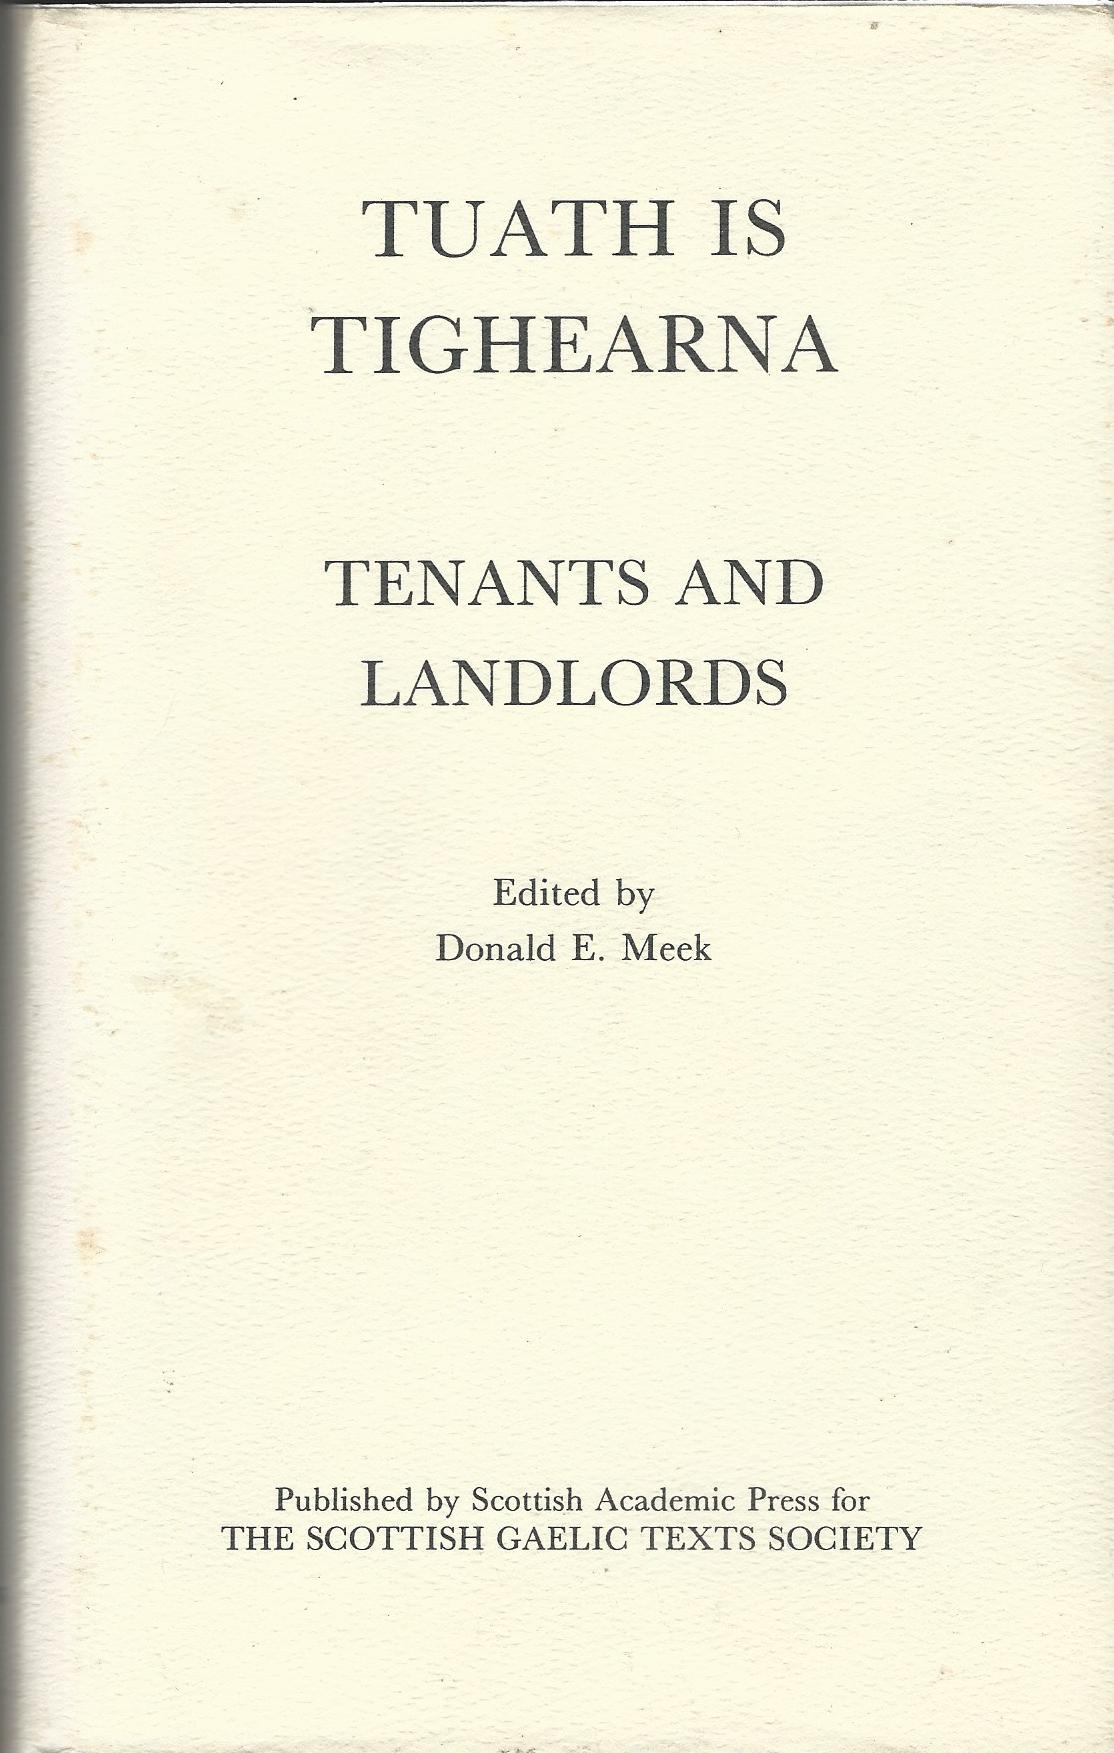 Image for Tuath is Tighearna: Tenants and Landlords : an Anthology of Gaelic poetry of social and political protest from the Clearances to the land agitation, 1800-1890 (Scottish Gaelic texts)